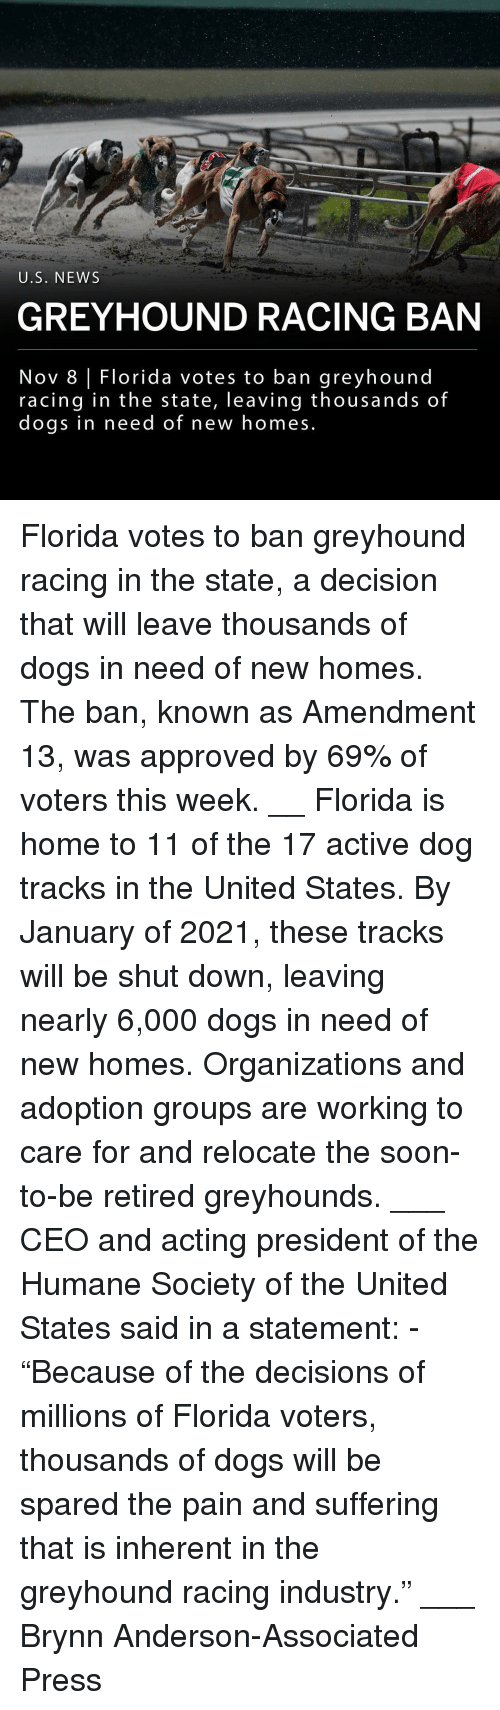 "Dogs, Memes, and News: U.S. NEWS  GREYHOUND RACING BAN  Nov 8 Florida votes to ban greyhound  racing in the state, leaving thousands of  doqs in need of new homes Florida votes to ban greyhound racing in the state, a decision that will leave thousands of dogs in need of new homes. The ban, known as Amendment 13, was approved by 69% of voters this week. __ Florida is home to 11 of the 17 active dog tracks in the United States. By January of 2021, these tracks will be shut down, leaving nearly 6,000 dogs in need of new homes. Organizations and adoption groups are working to care for and relocate the soon-to-be retired greyhounds. ___ CEO and acting president of the Humane Society of the United States said in a statement: - ""Because of the decisions of millions of Florida voters, thousands of dogs will be spared the pain and suffering that is inherent in the greyhound racing industry."" ___ Brynn Anderson-Associated Press"